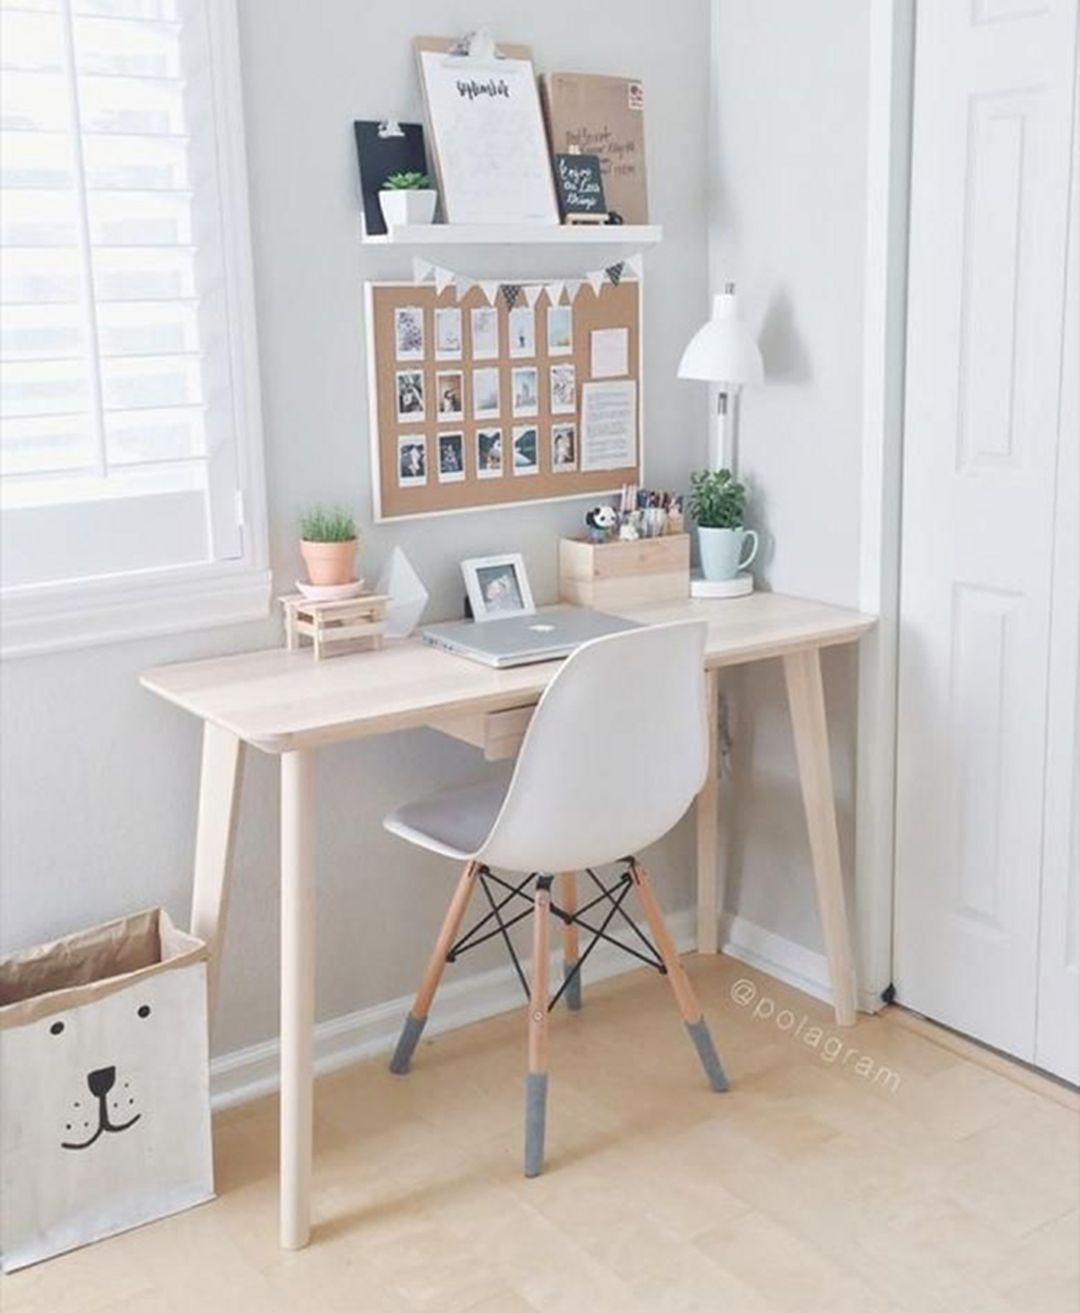 Make Your Work Improvement With 25 Best Modern Small Home Office Design Ideas Decor It S Study Room Decor Cheap Office Furniture Home Decor Bedroom